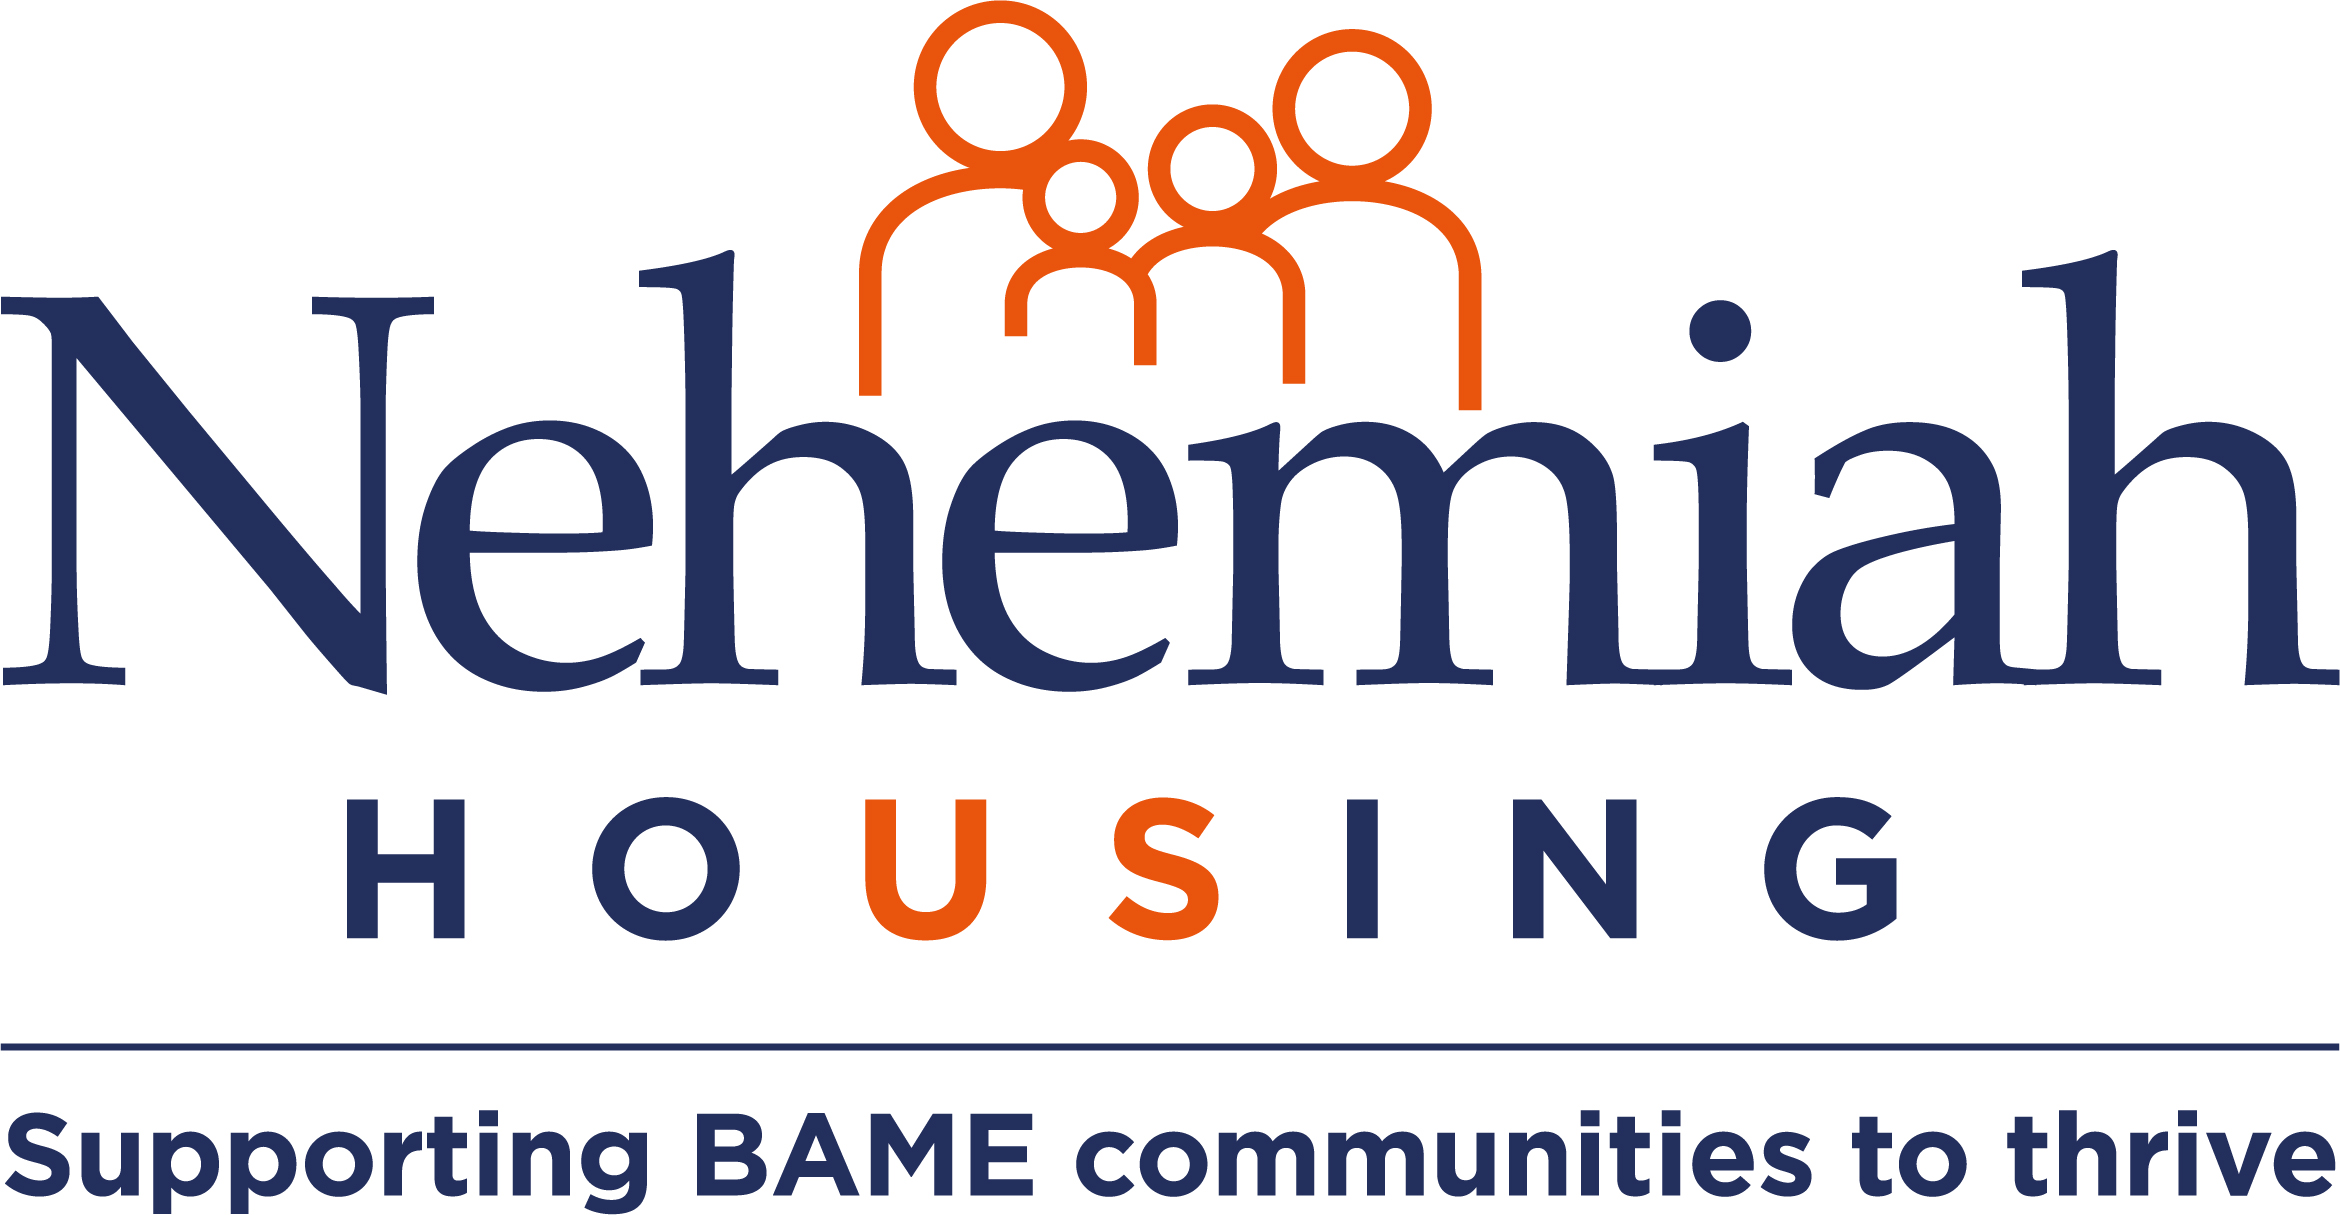 Tribute to BAME Champions & Housing Association's Founding Fathers